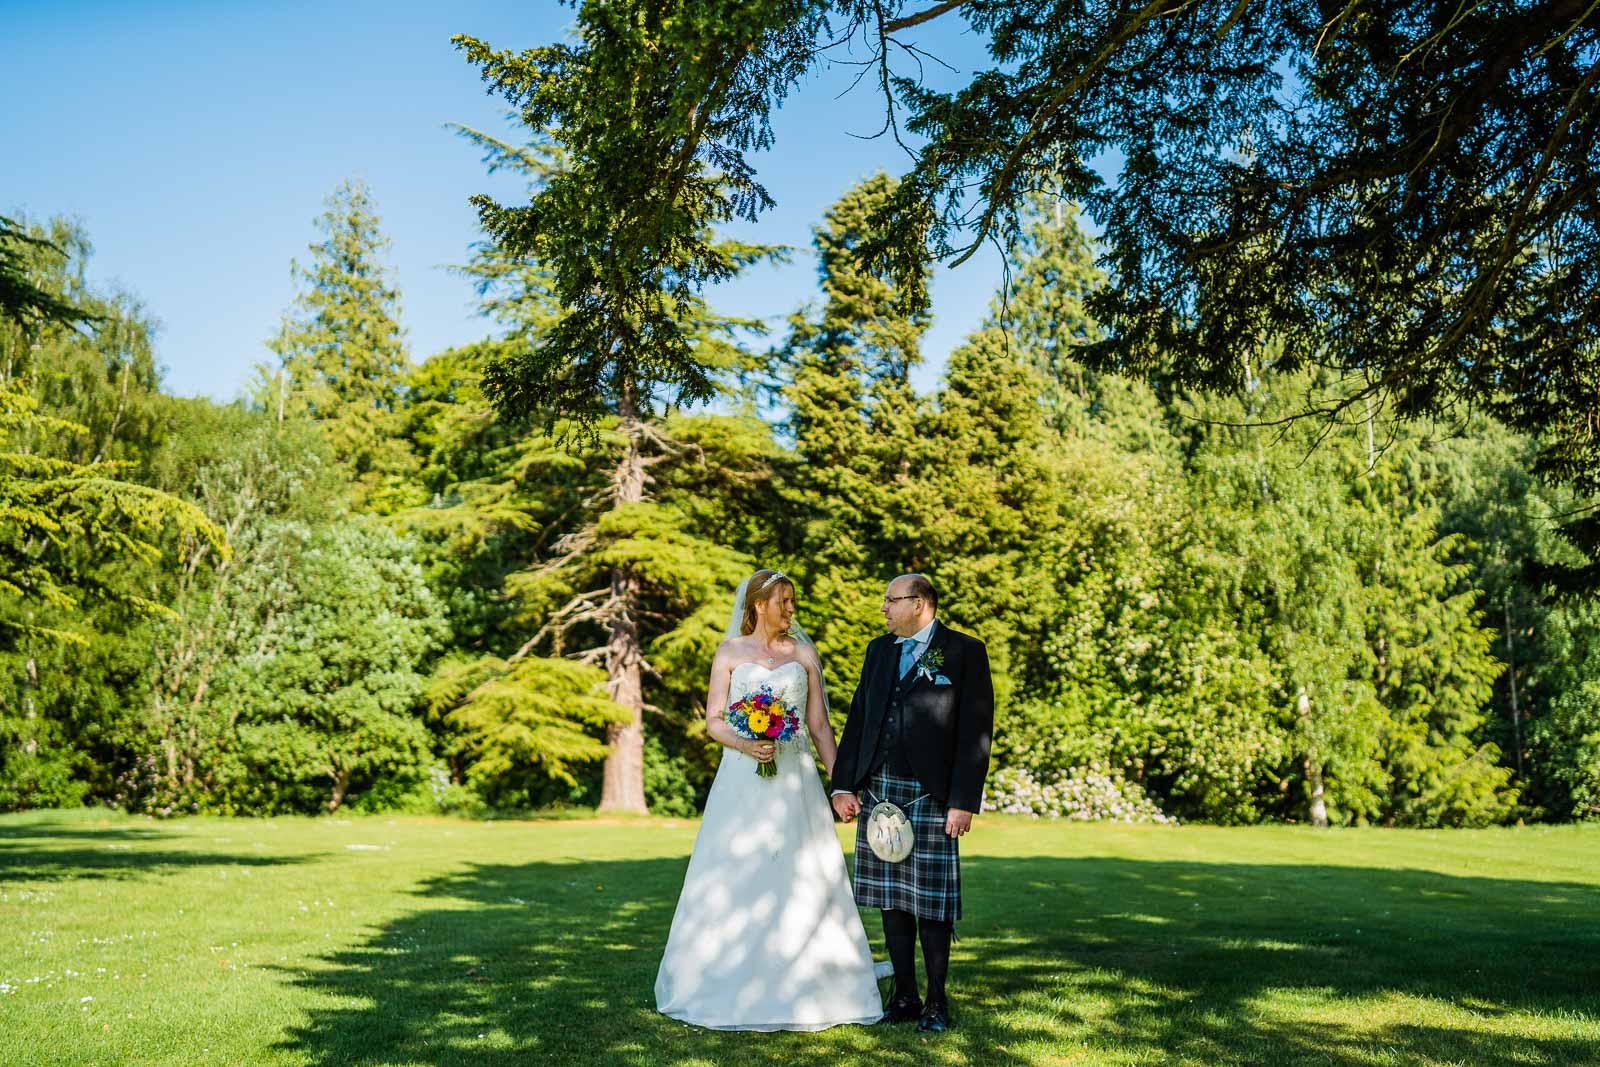 dalhousie_castle_wedding_edinburgh_dearlyphotography (217 of 371).jpg